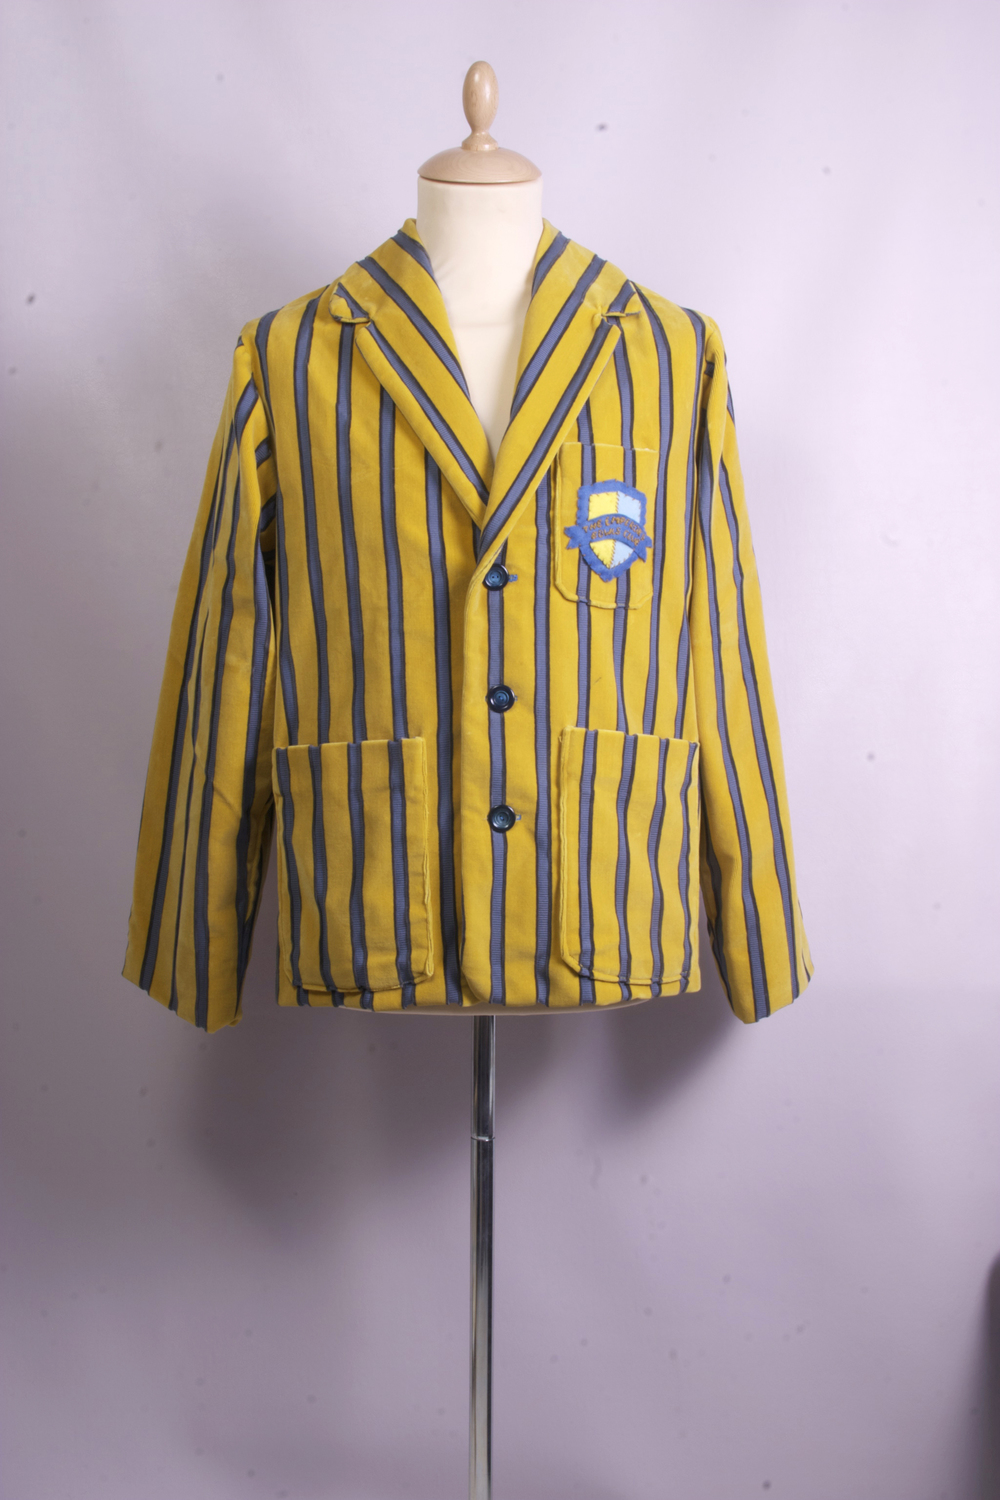 Bowls Jacket from The Emperor's Old Clothes